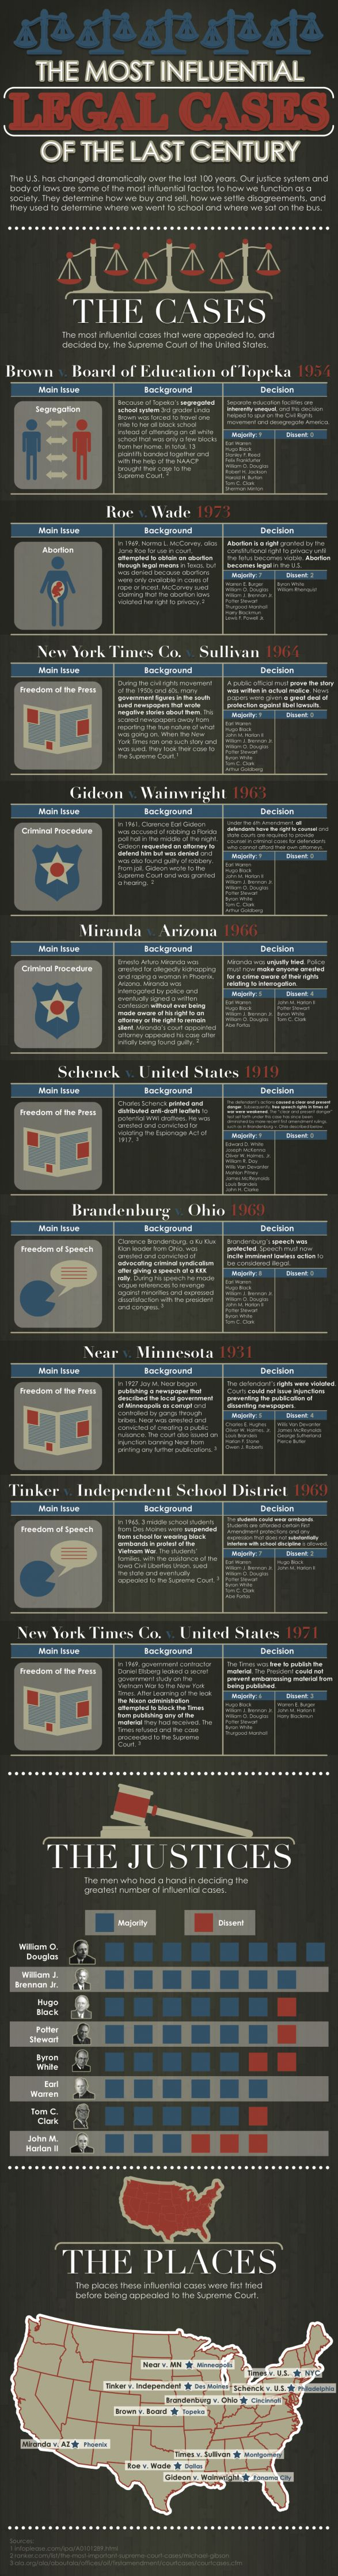 The Most Influential Legal Cases of the Last Century... need something like this in my classroom because they will be working with cases a lot!